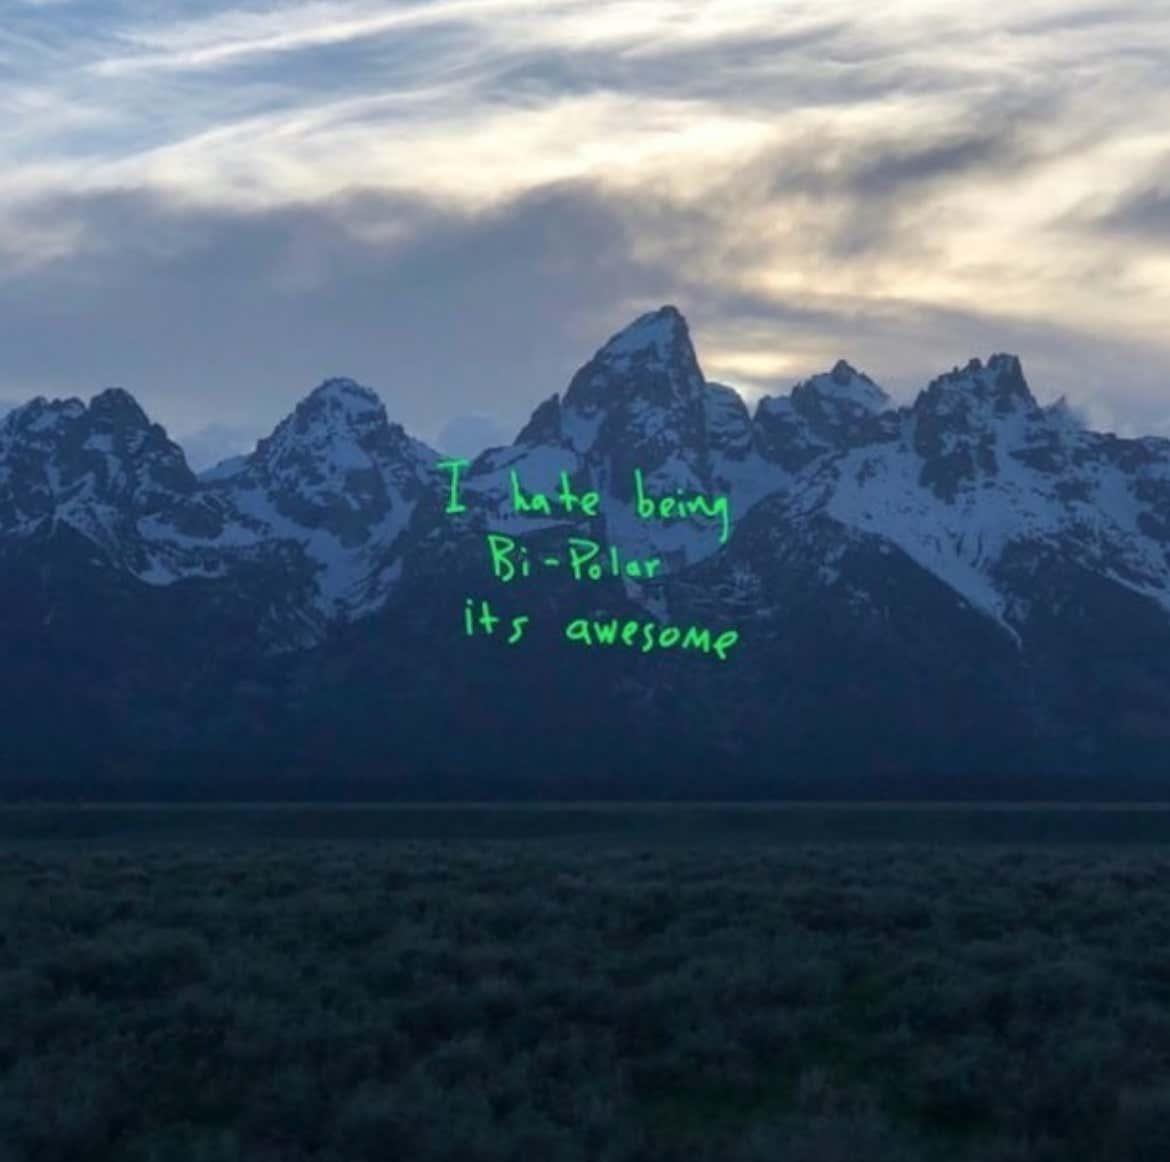 The new kanye album is awesome barstool sports screen shot 2018 06 04 at 102306 am malvernweather Images